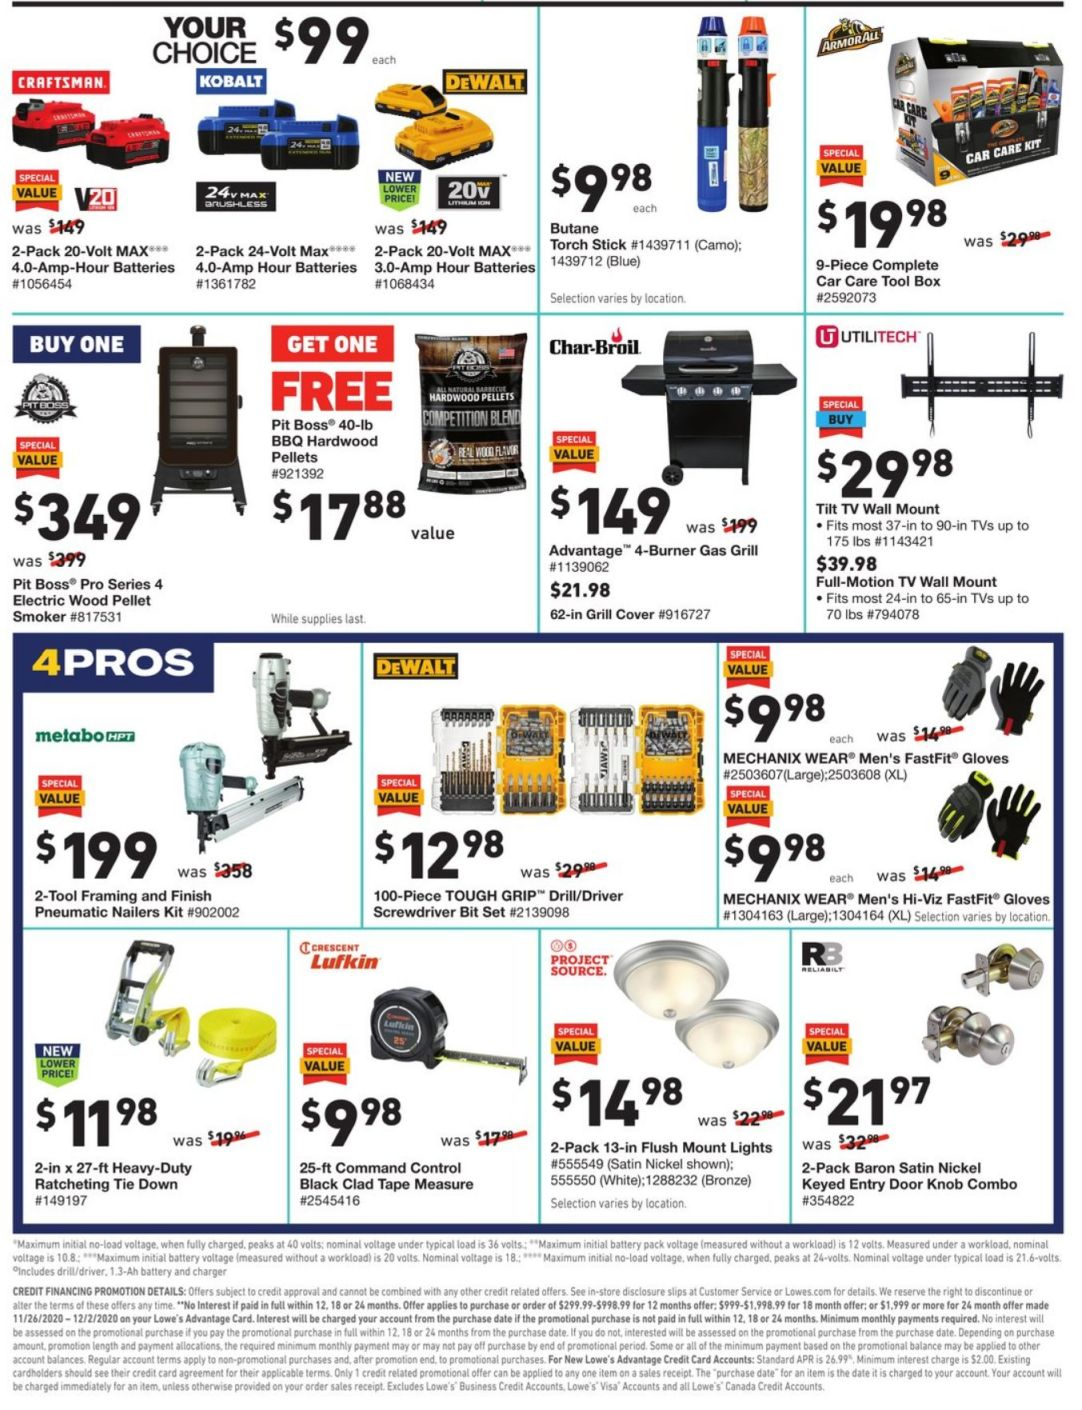 Lowe's Black Friday 2020 Page 6